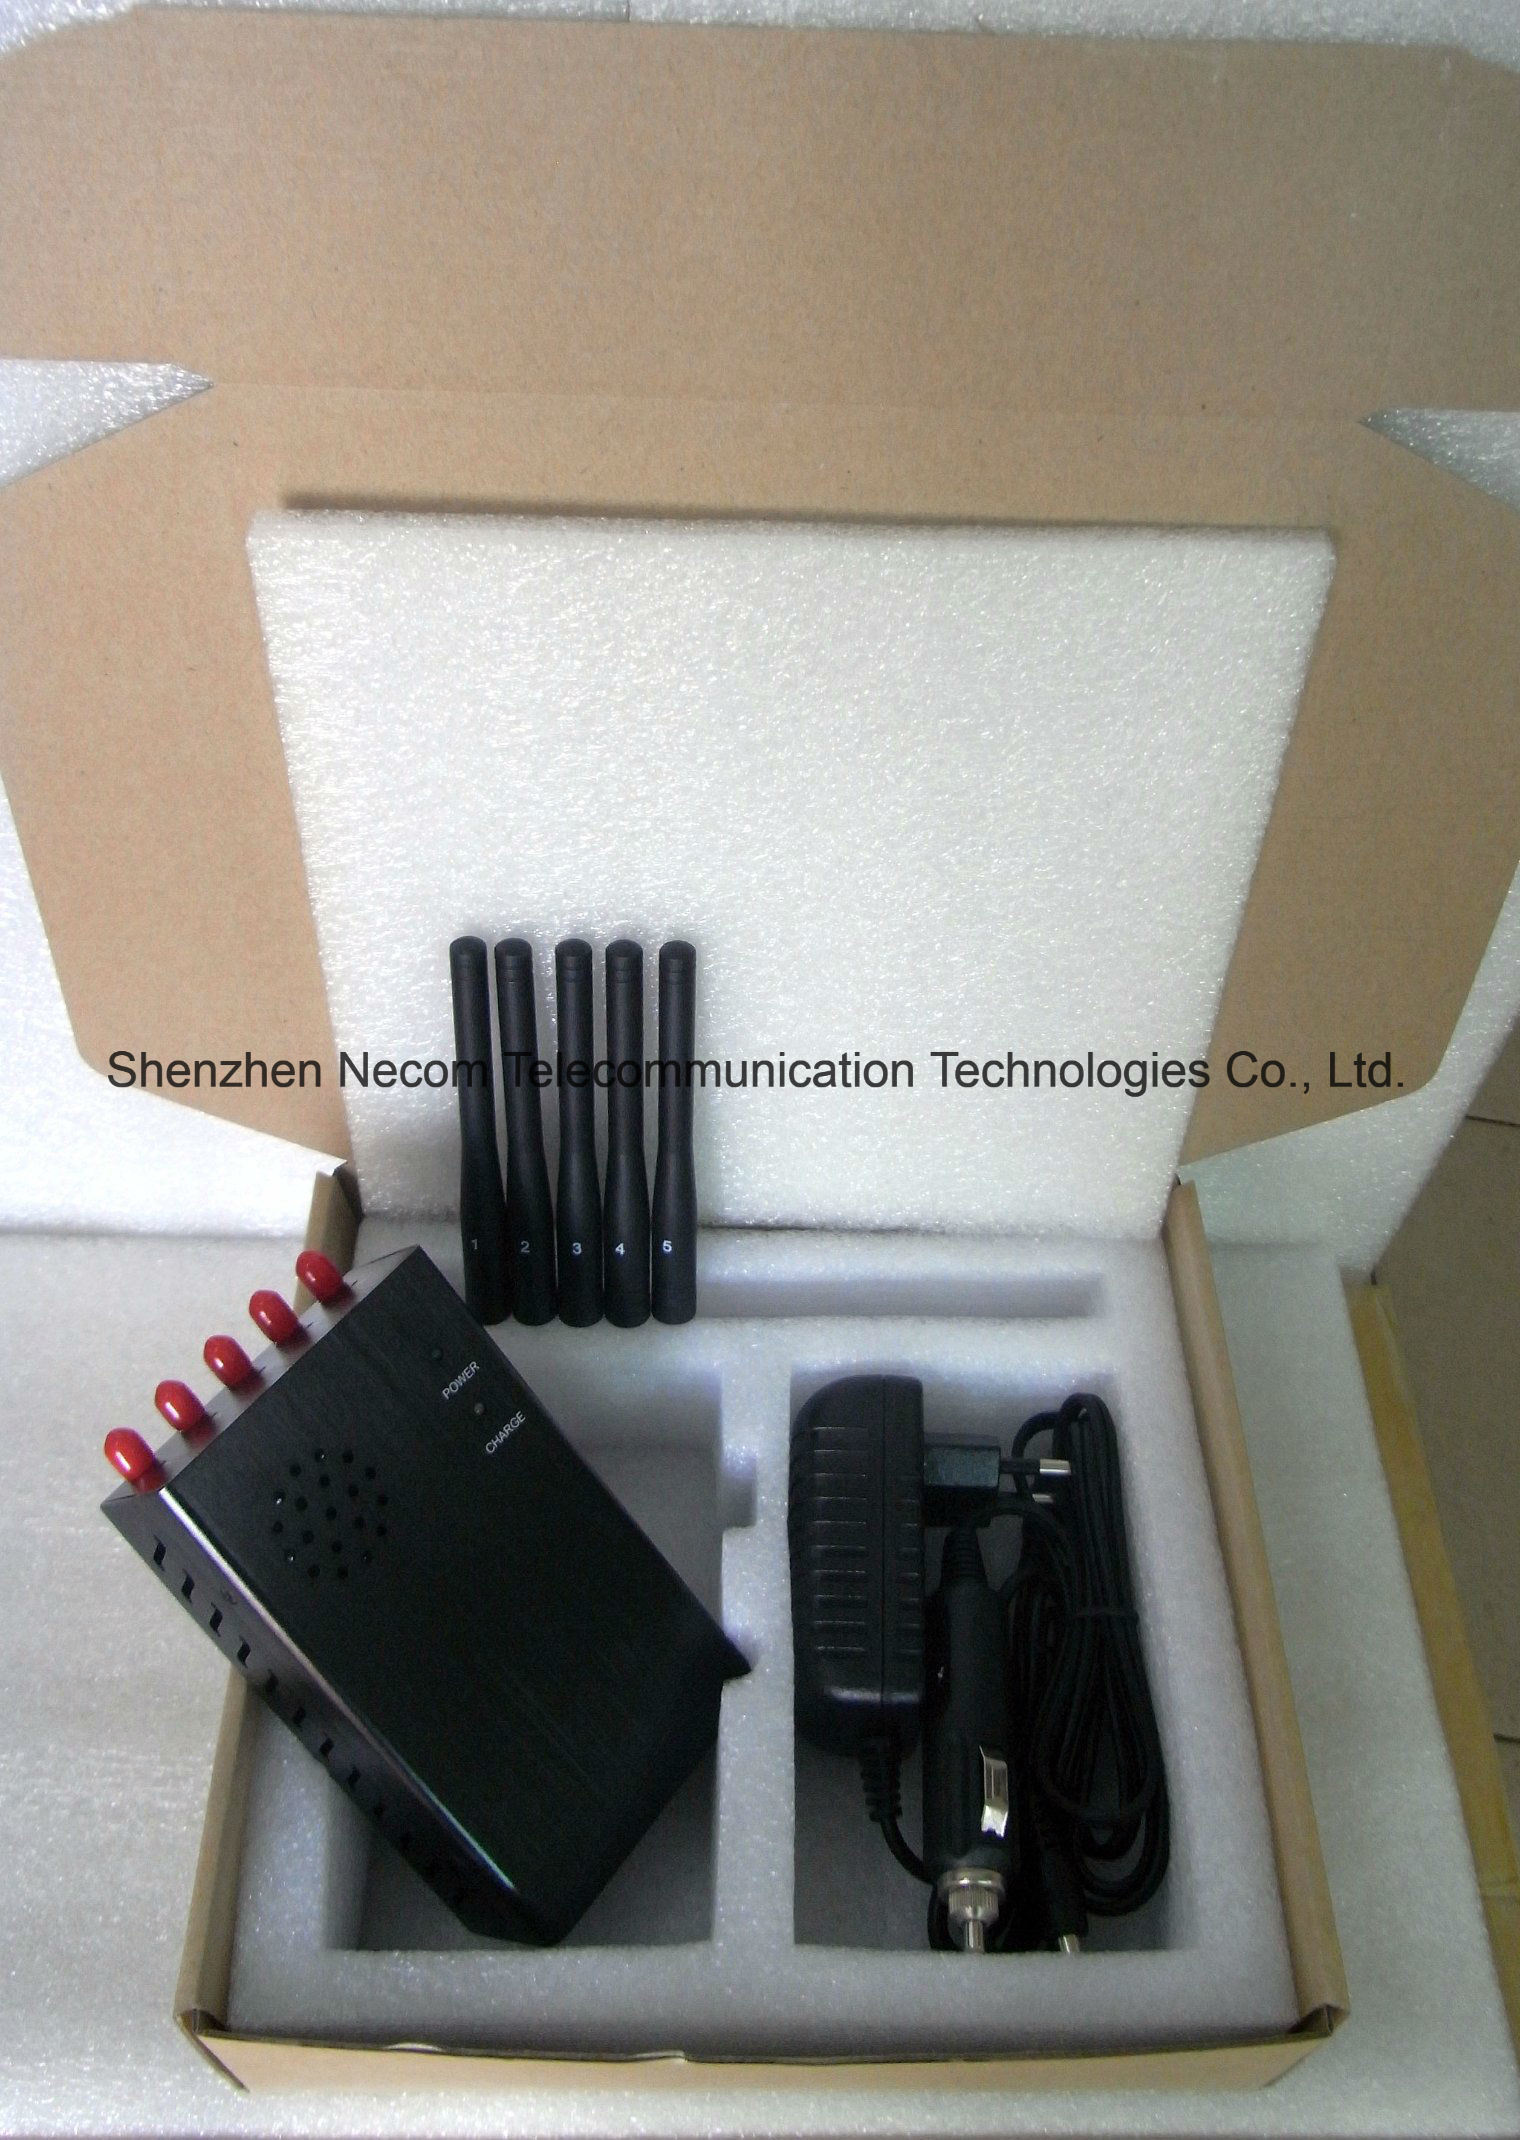 mobile phone network jammer circuit - China 2g+3G+Gpsl1+Lojack 5 Antennas Signal Blockers - China 2g+3G+Gpsl1+Lojack 5 Antennas Signal Blockers, 5 Band Signal Jammers